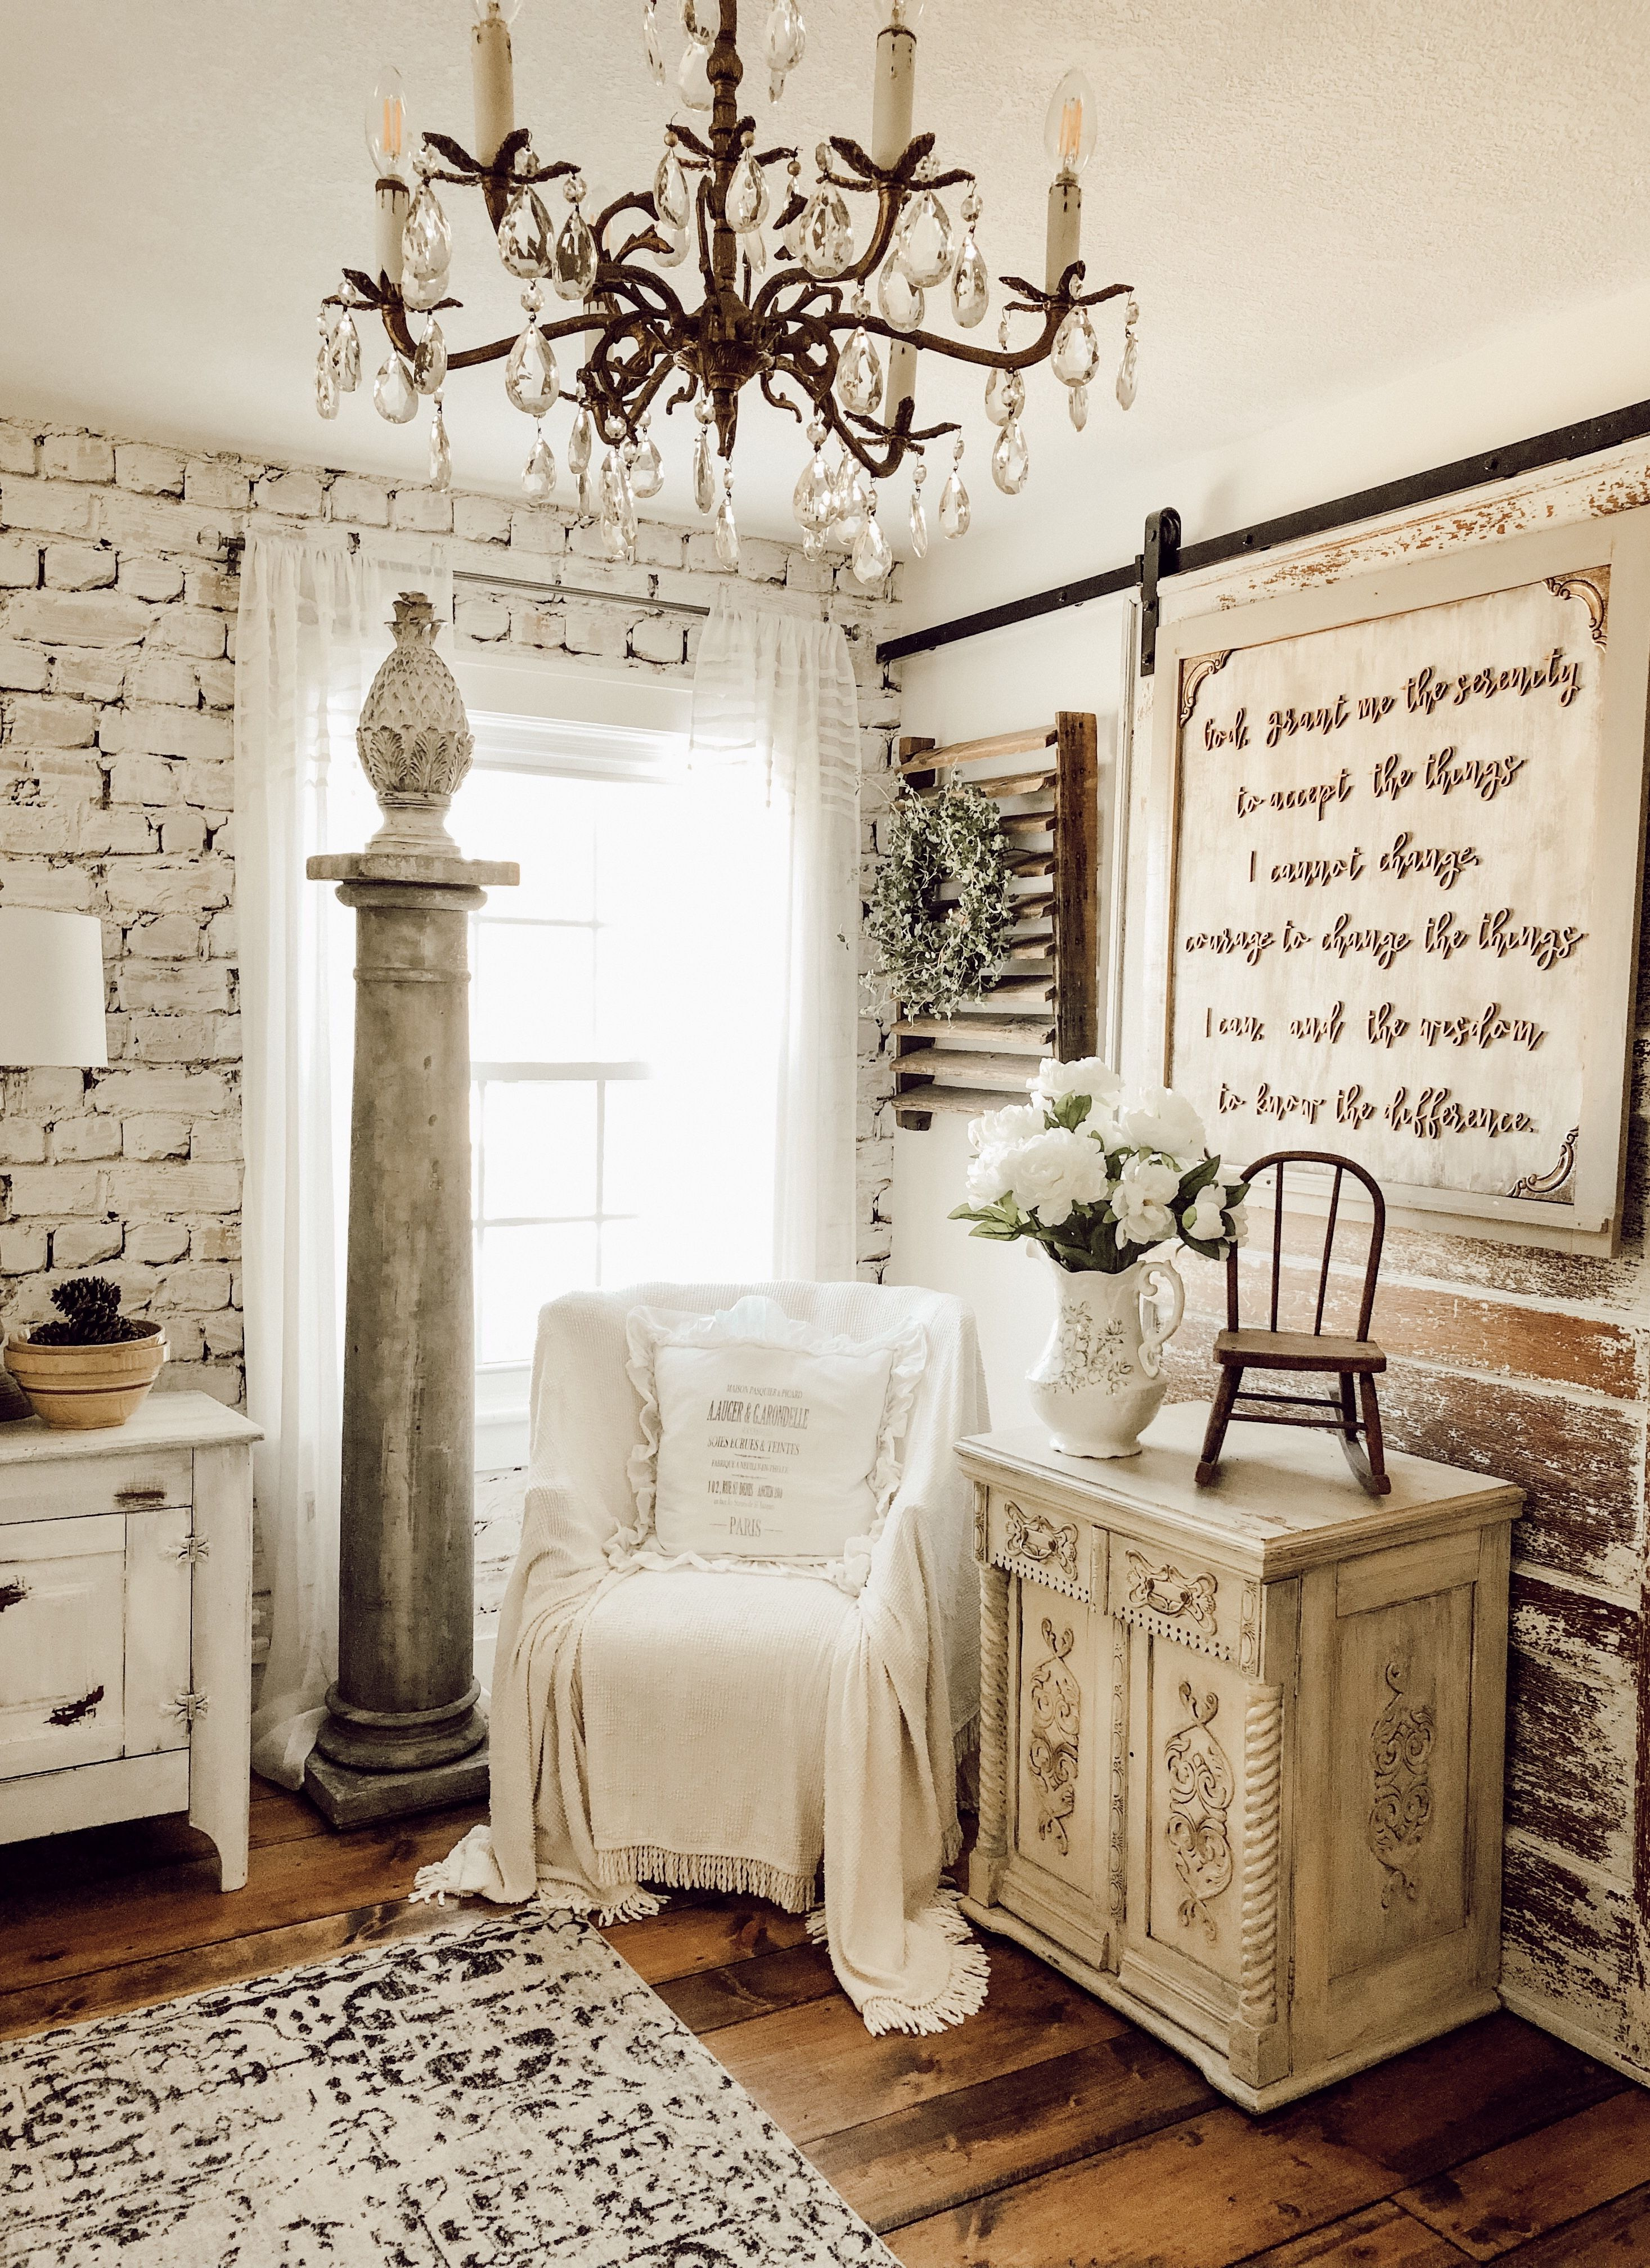 Decorating with Vintage Items in the Master Bedroom - The House on Winchester #bedroomvintage